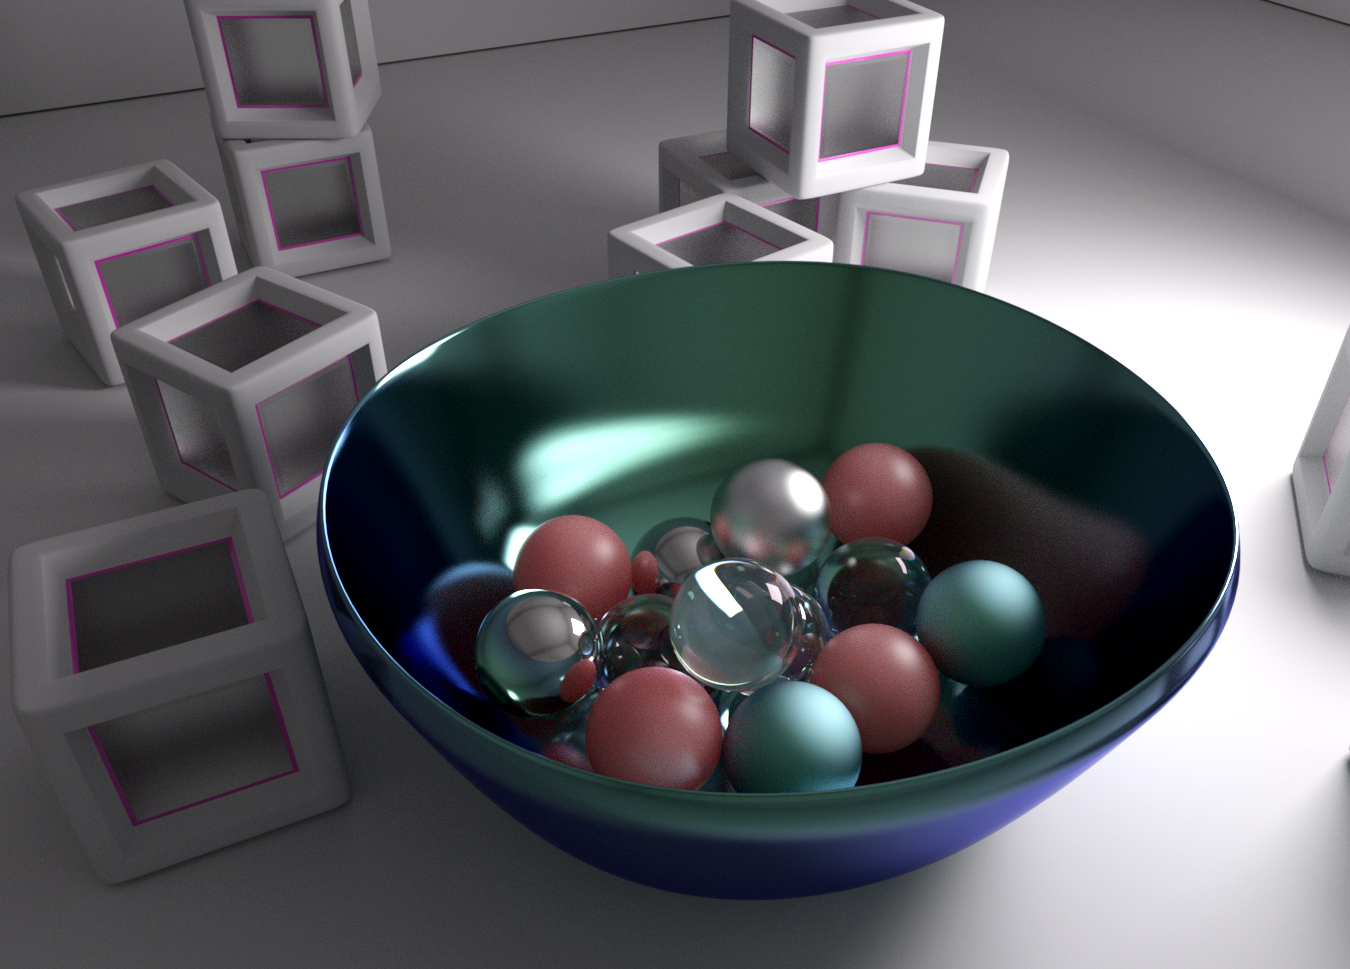 Iray render DAZ Studio - still lifebl - various balls inside a metal dish